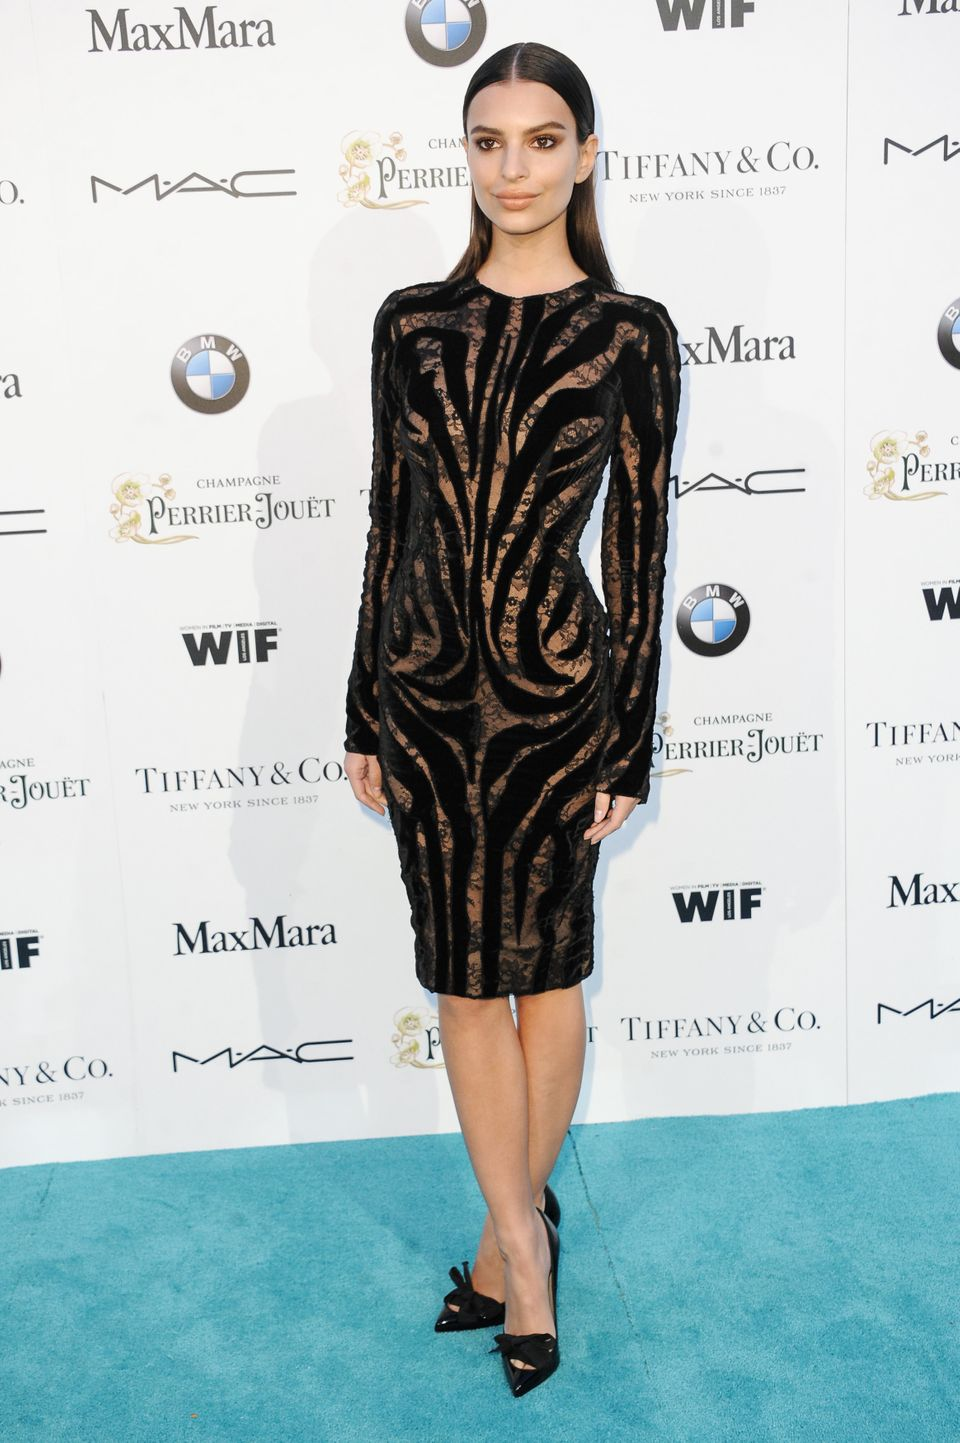 Emily Ratajkowski arrives at the 8th Annual Women In Film Pre-Oscar Cocktail Party on Friday, Feb. 20, 2015, in Los Angeles.